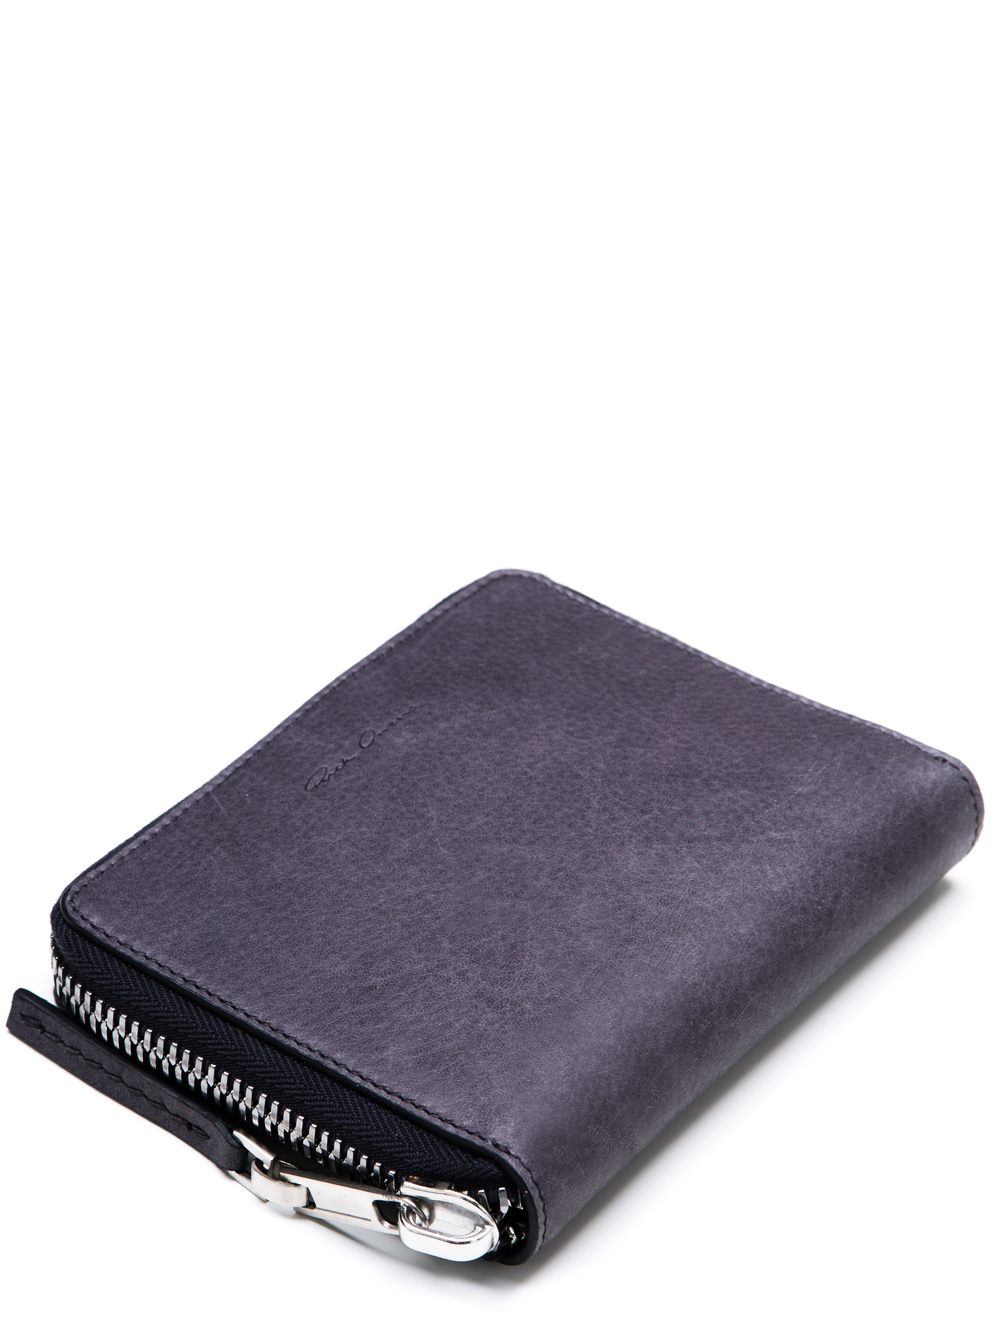 RICK OWENS SMALL ZIPPED WALLET IN PURPLE CALF LEATHER